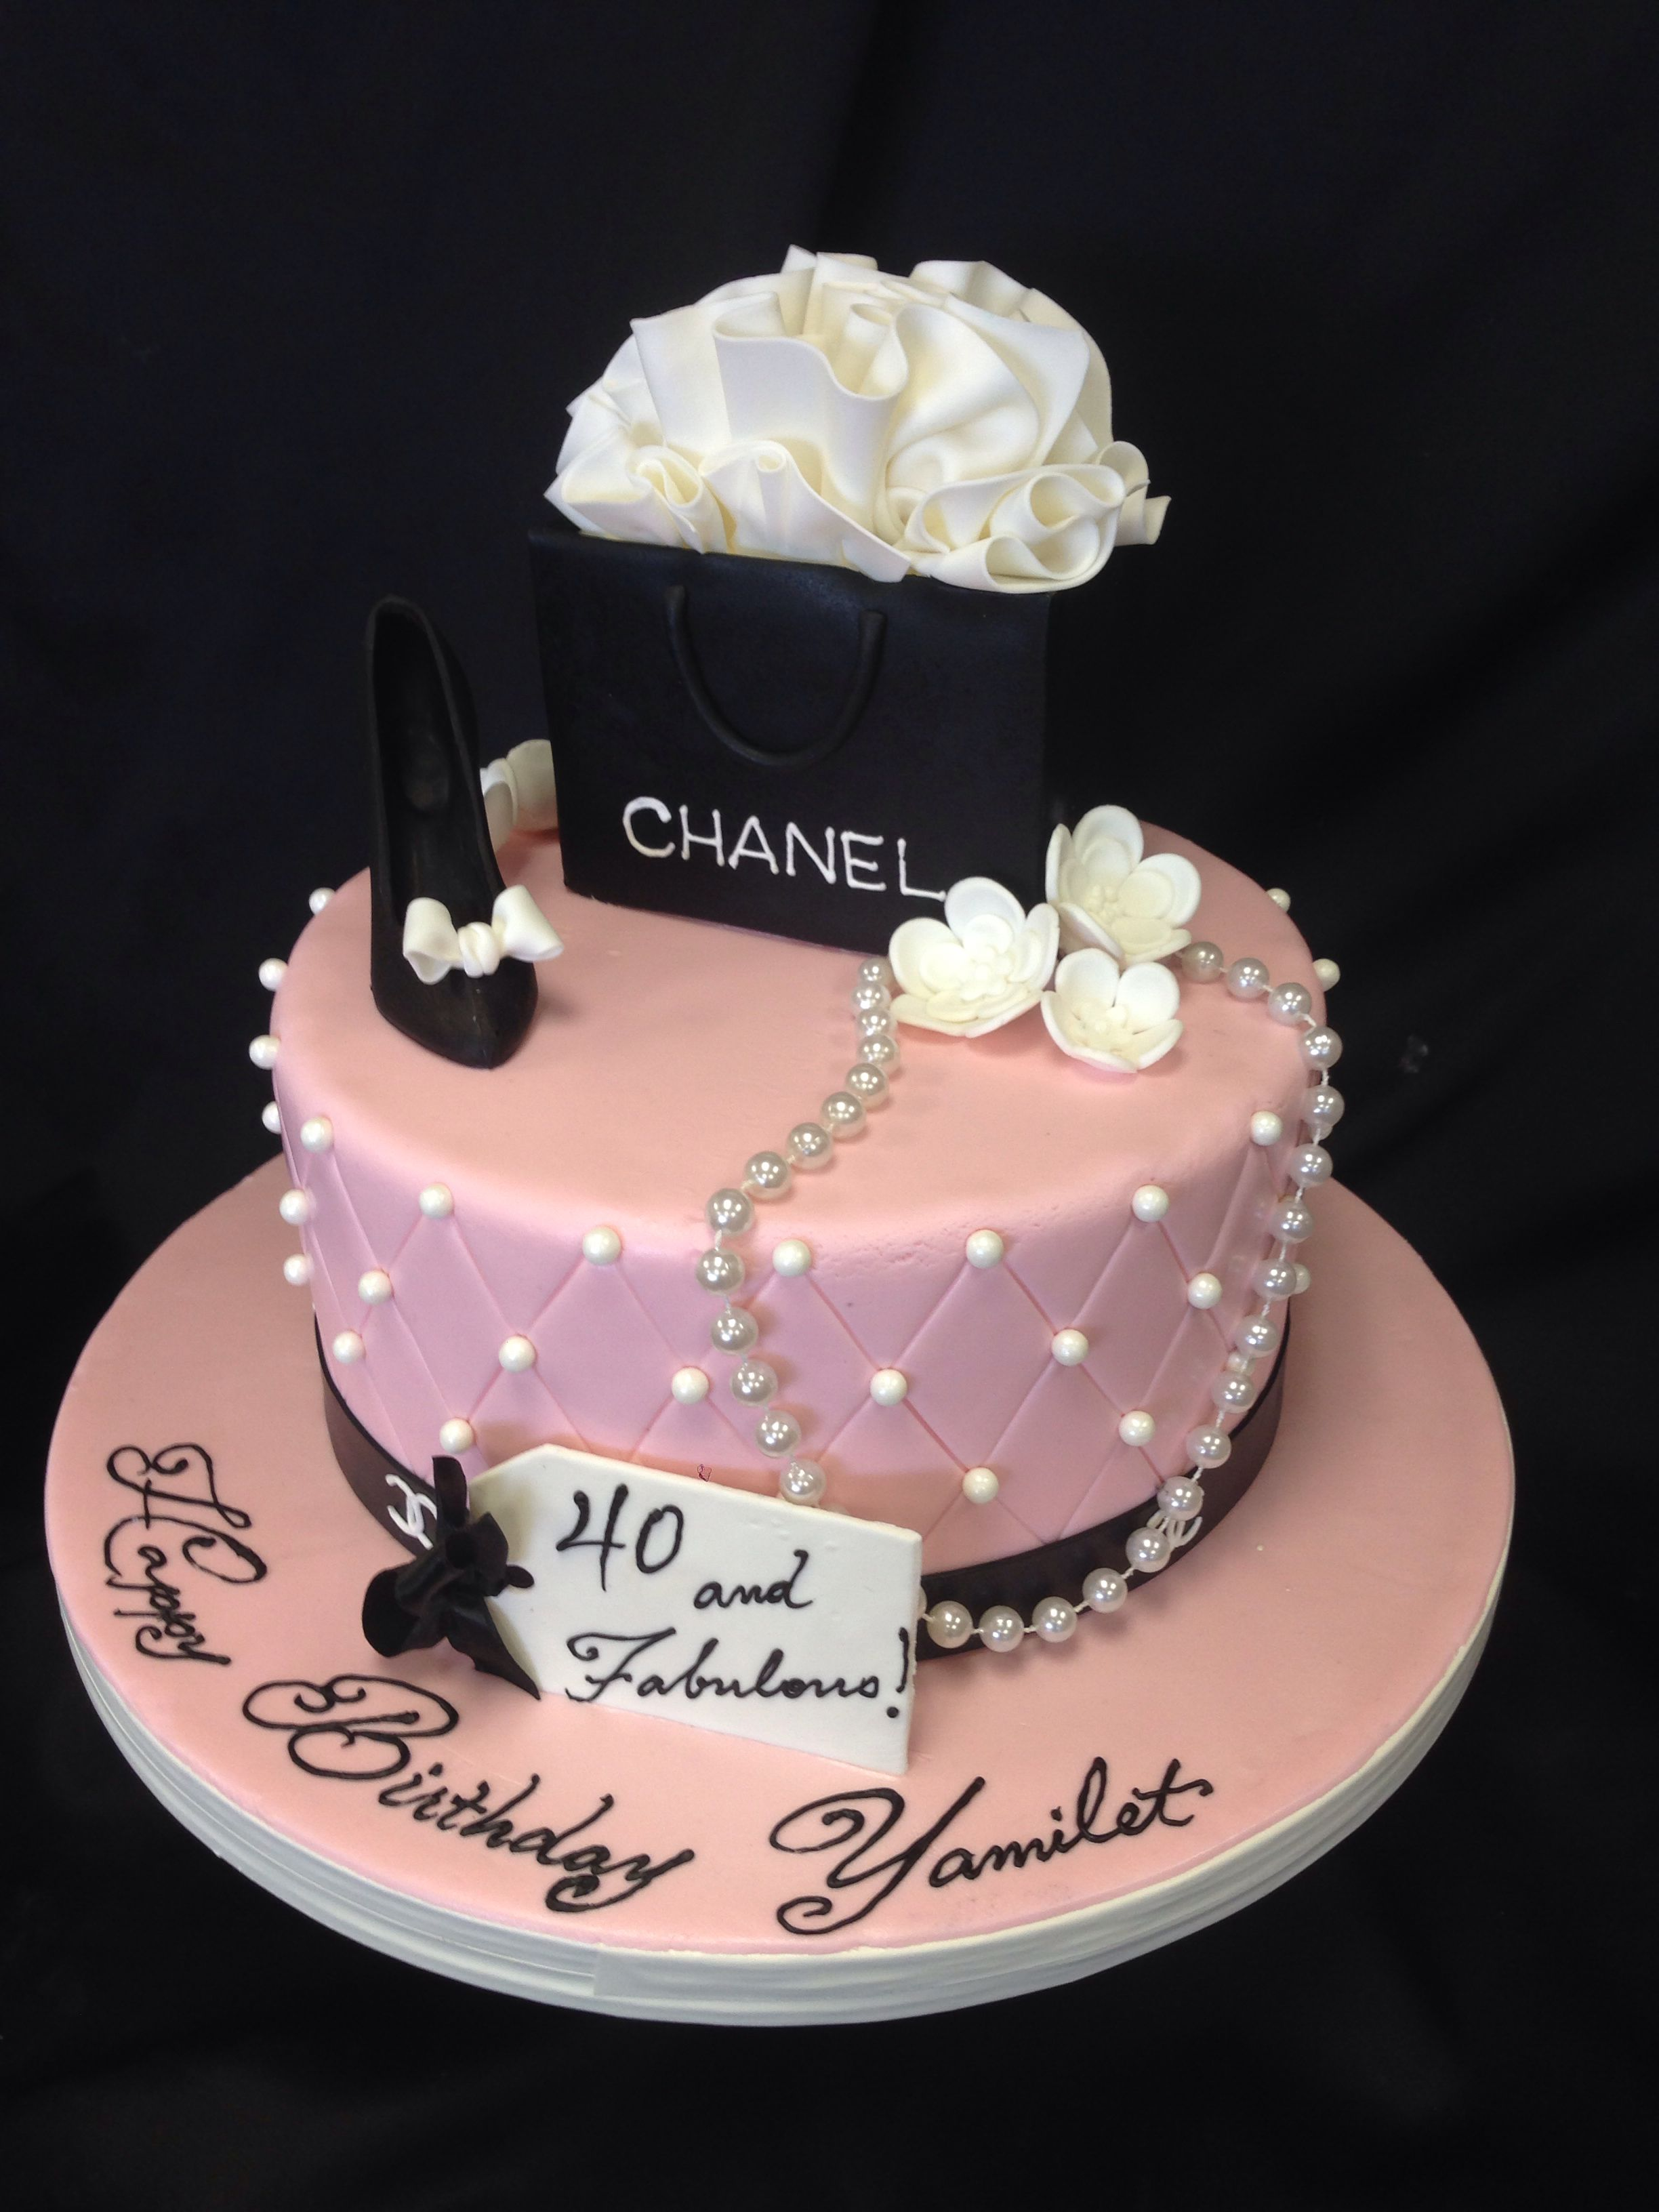 Chanel Inspired Birthday Cakeglamluxepartydecor Free Shipping